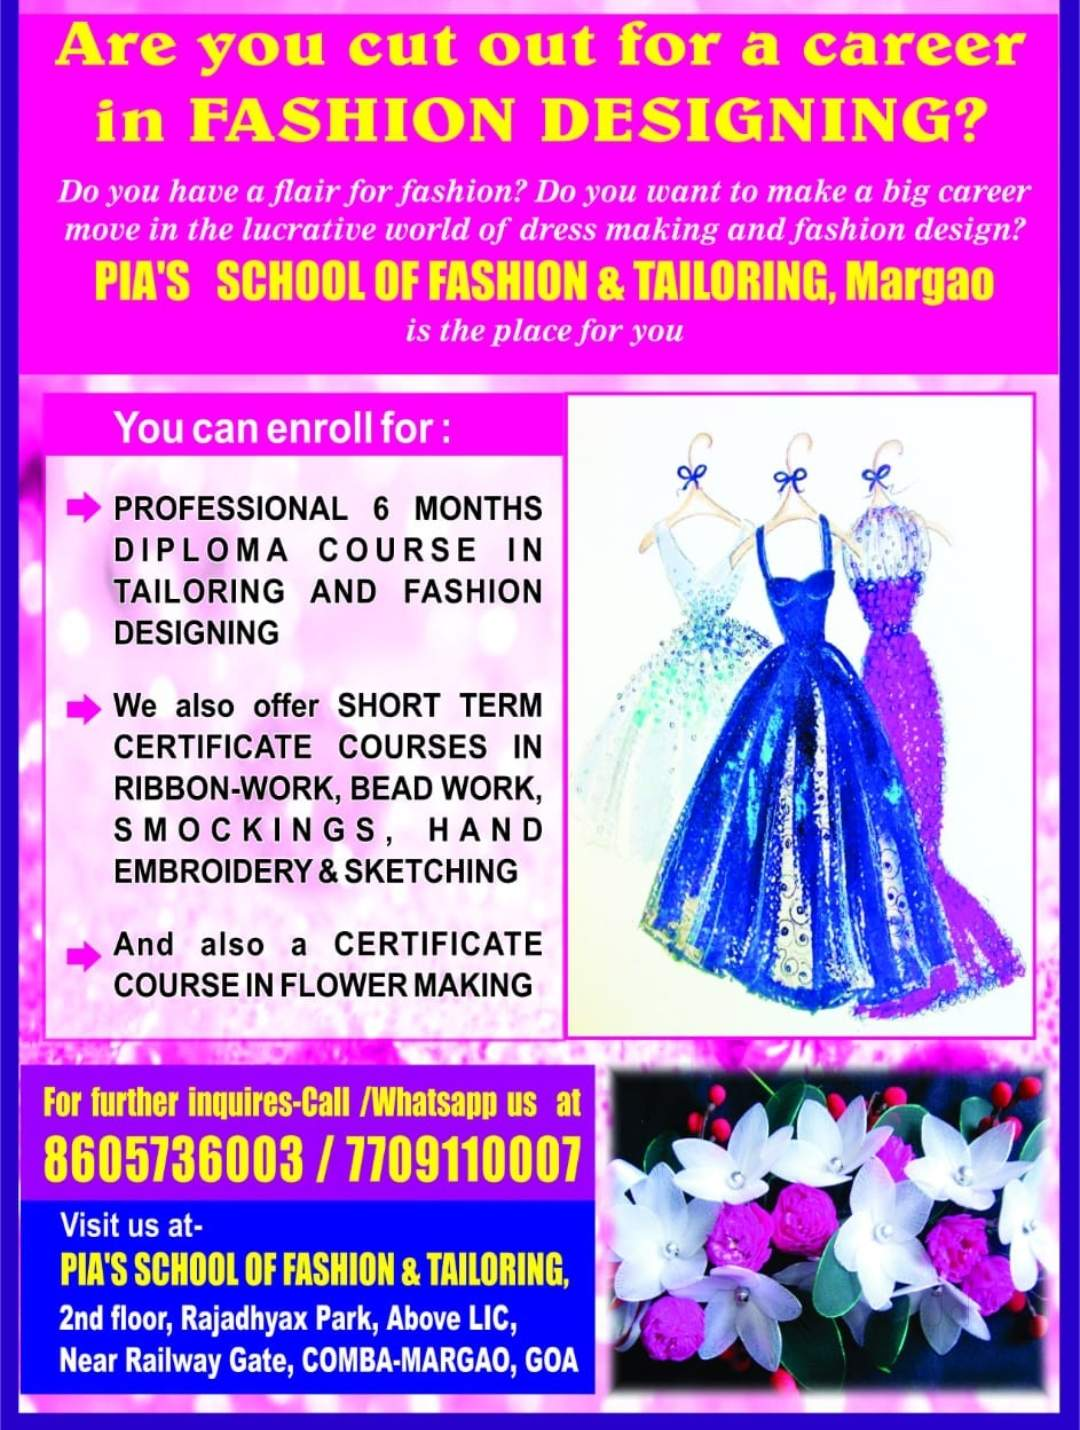 Pia School Of Fashion And Tailoring Margao Schools In Goa Justdial